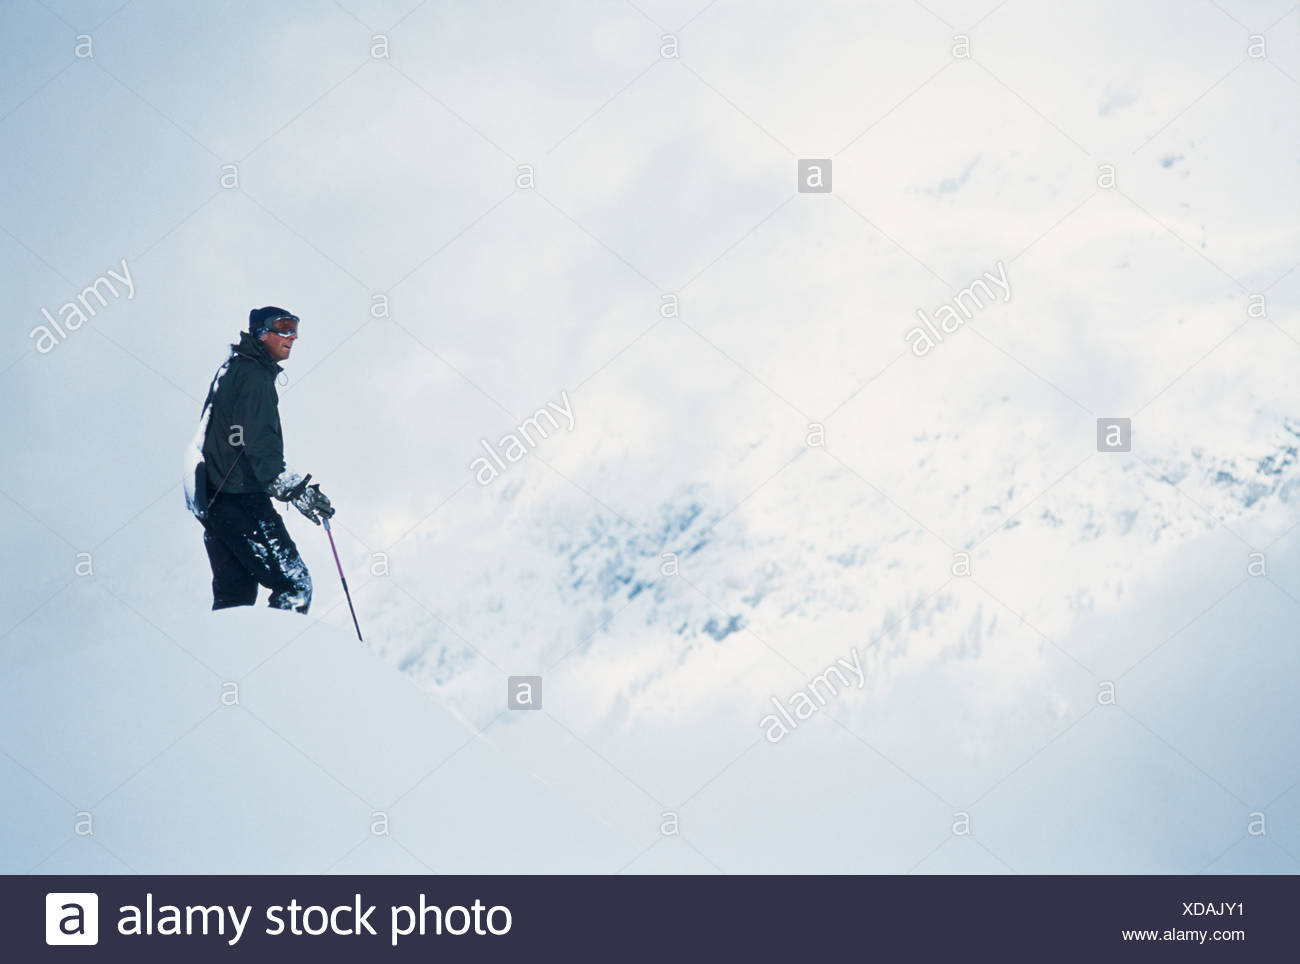 Skier taking in the view on massive slopes high above Chamonix Valley. Stock Photo